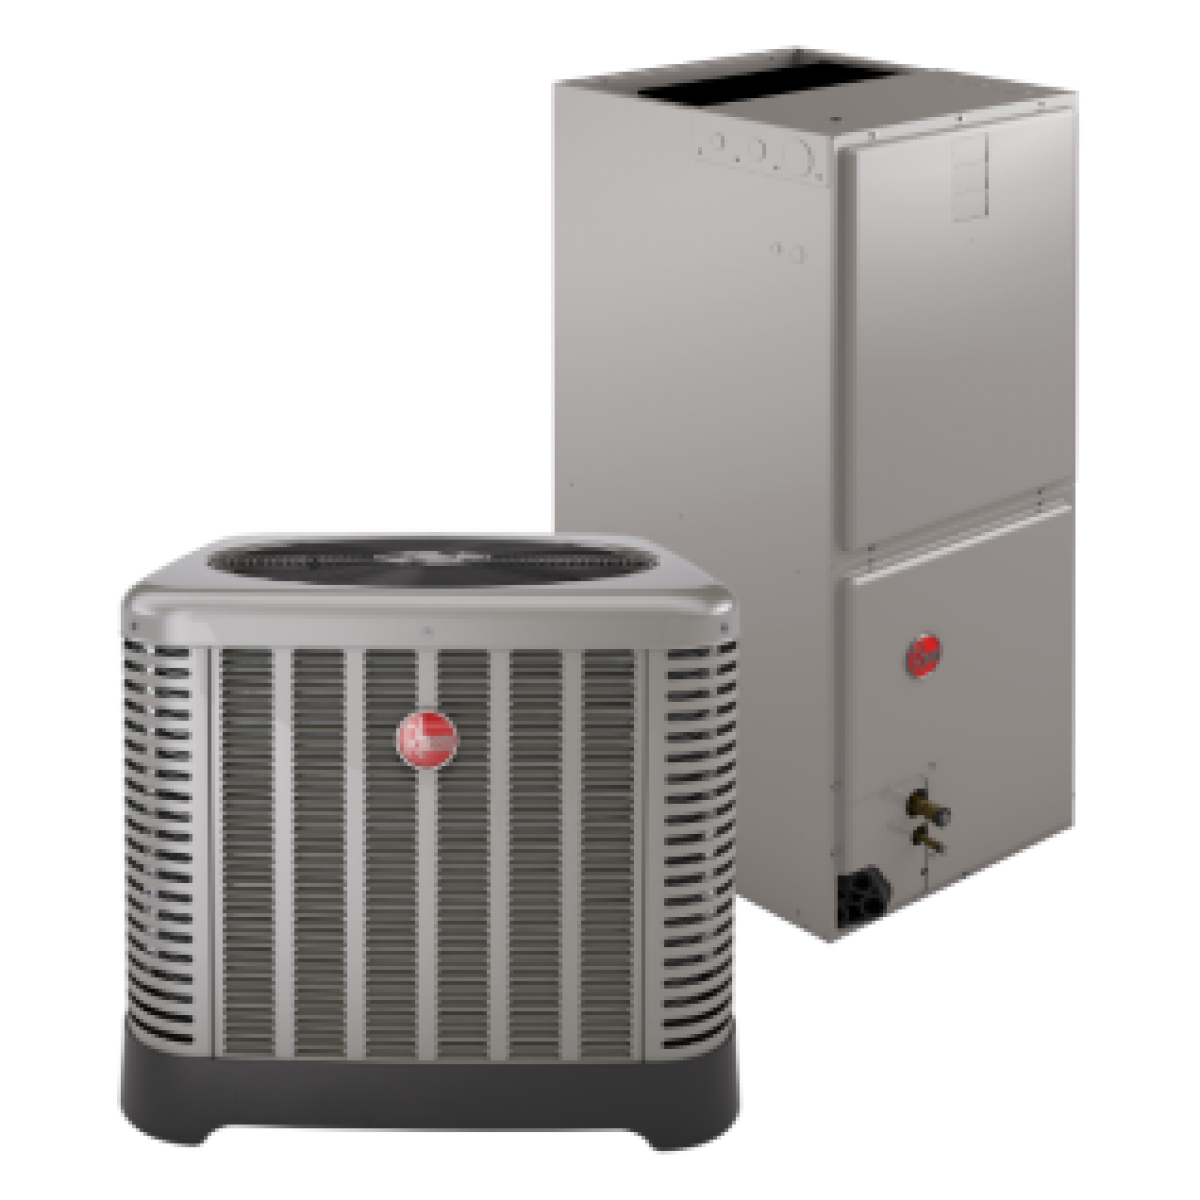 3 5 Ton Ac Unit >> Rheem 15 SEER 3.5 Ton Electric Heat System in 3.5 Ton - 5.0 Ton - AC/Electric Heat - Systems